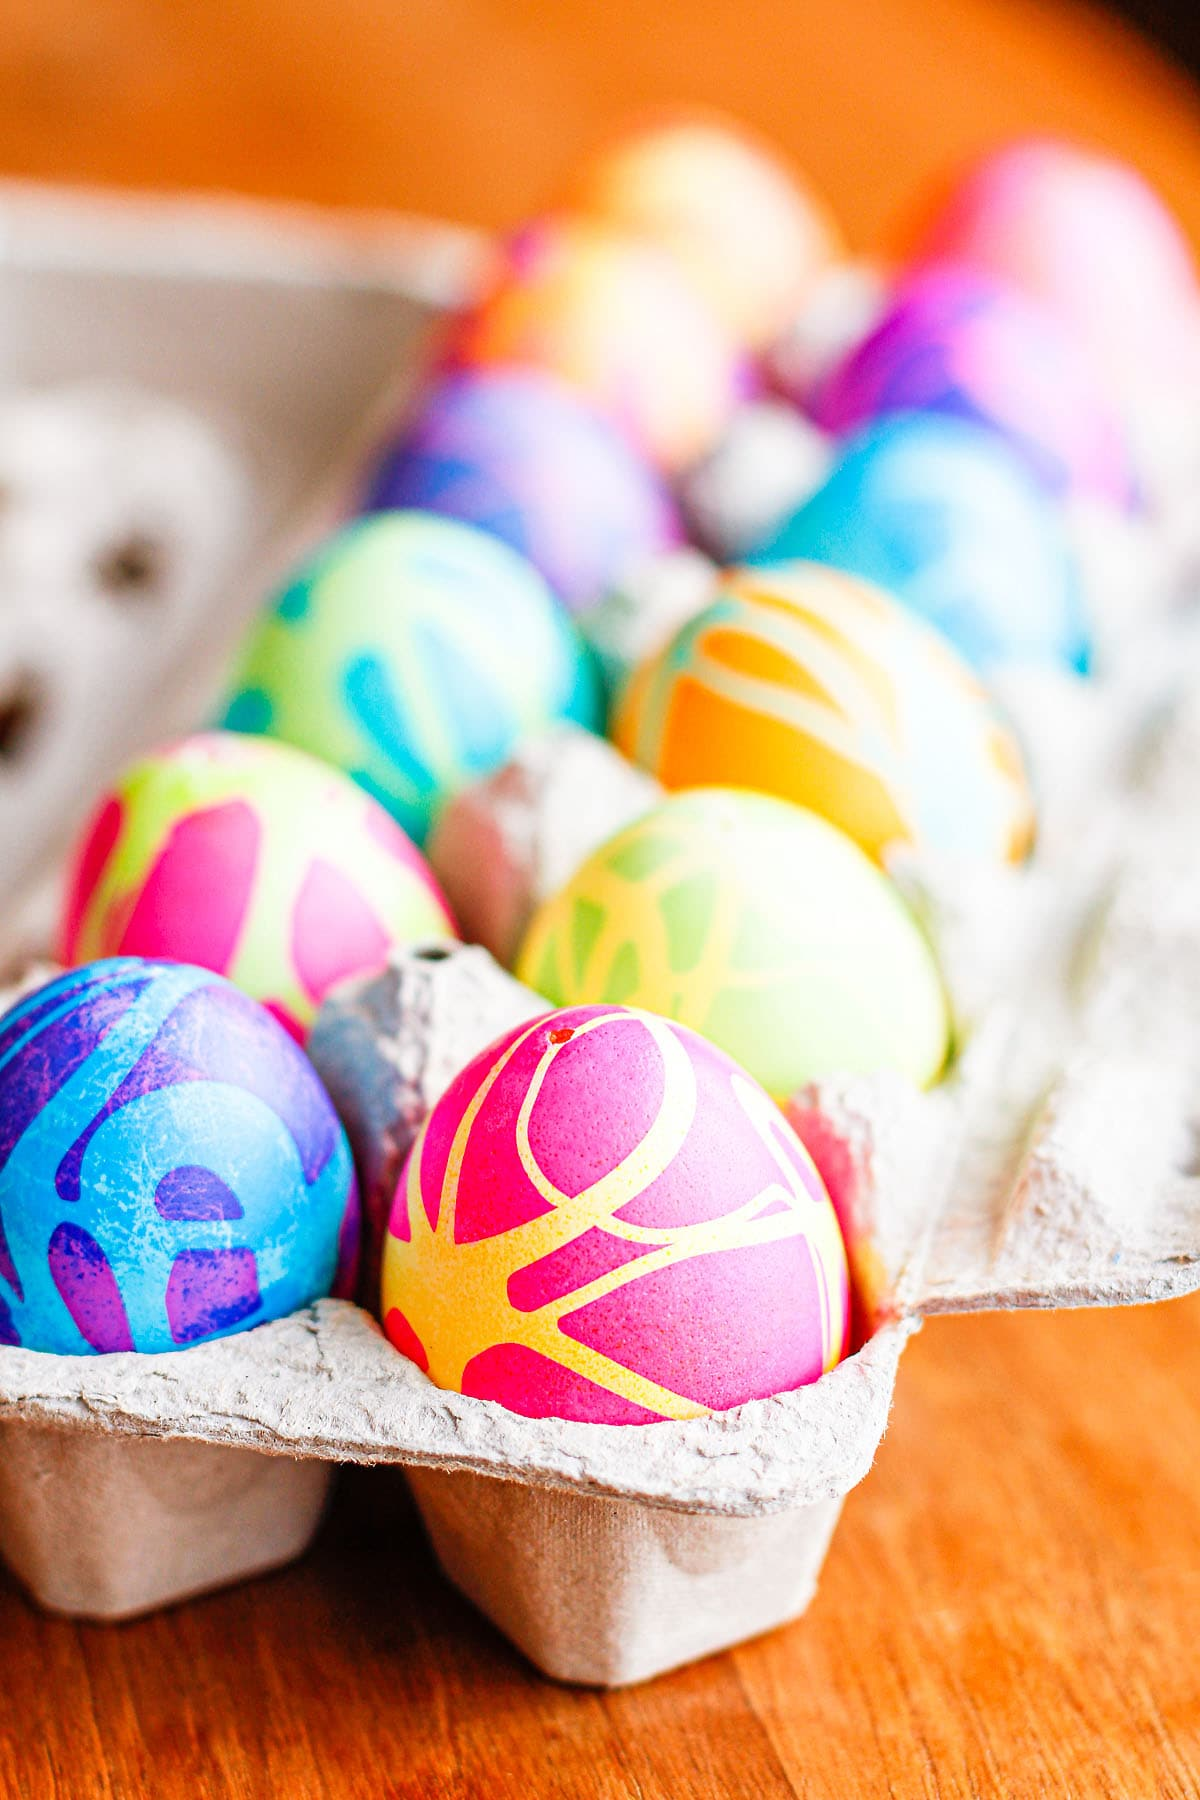 egg coloring ideas with Betty Crocker gel food coloring